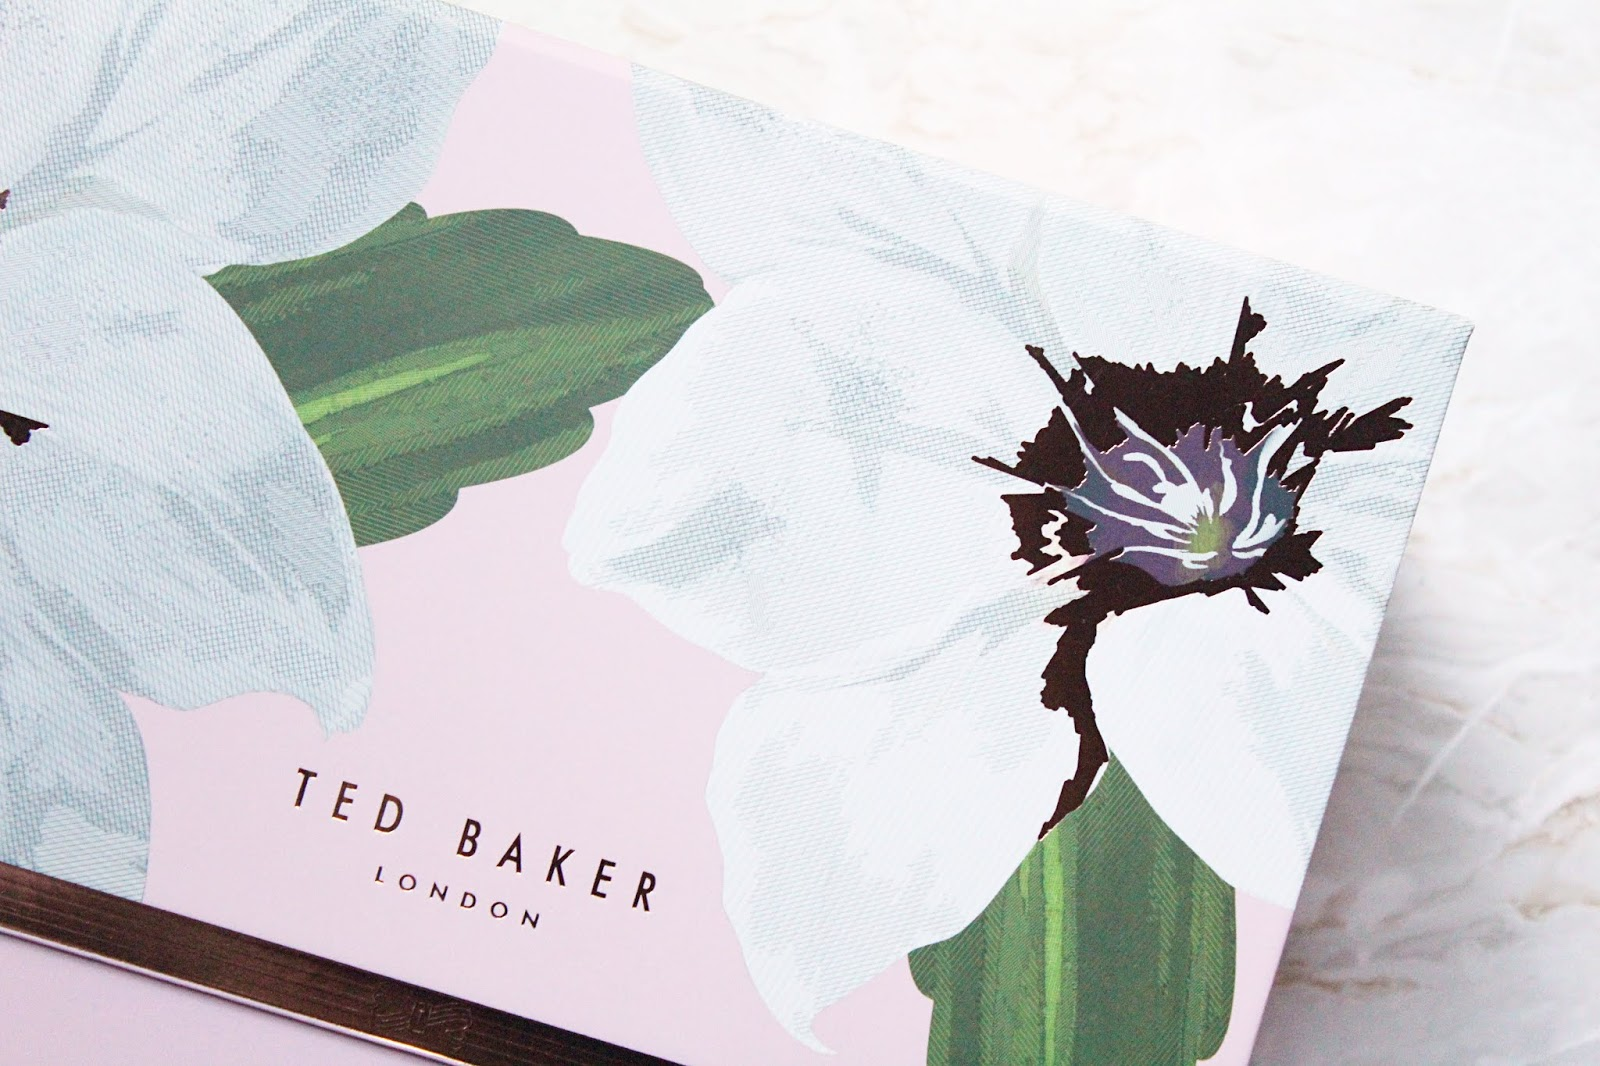 Ted Baker Star Gift 2018